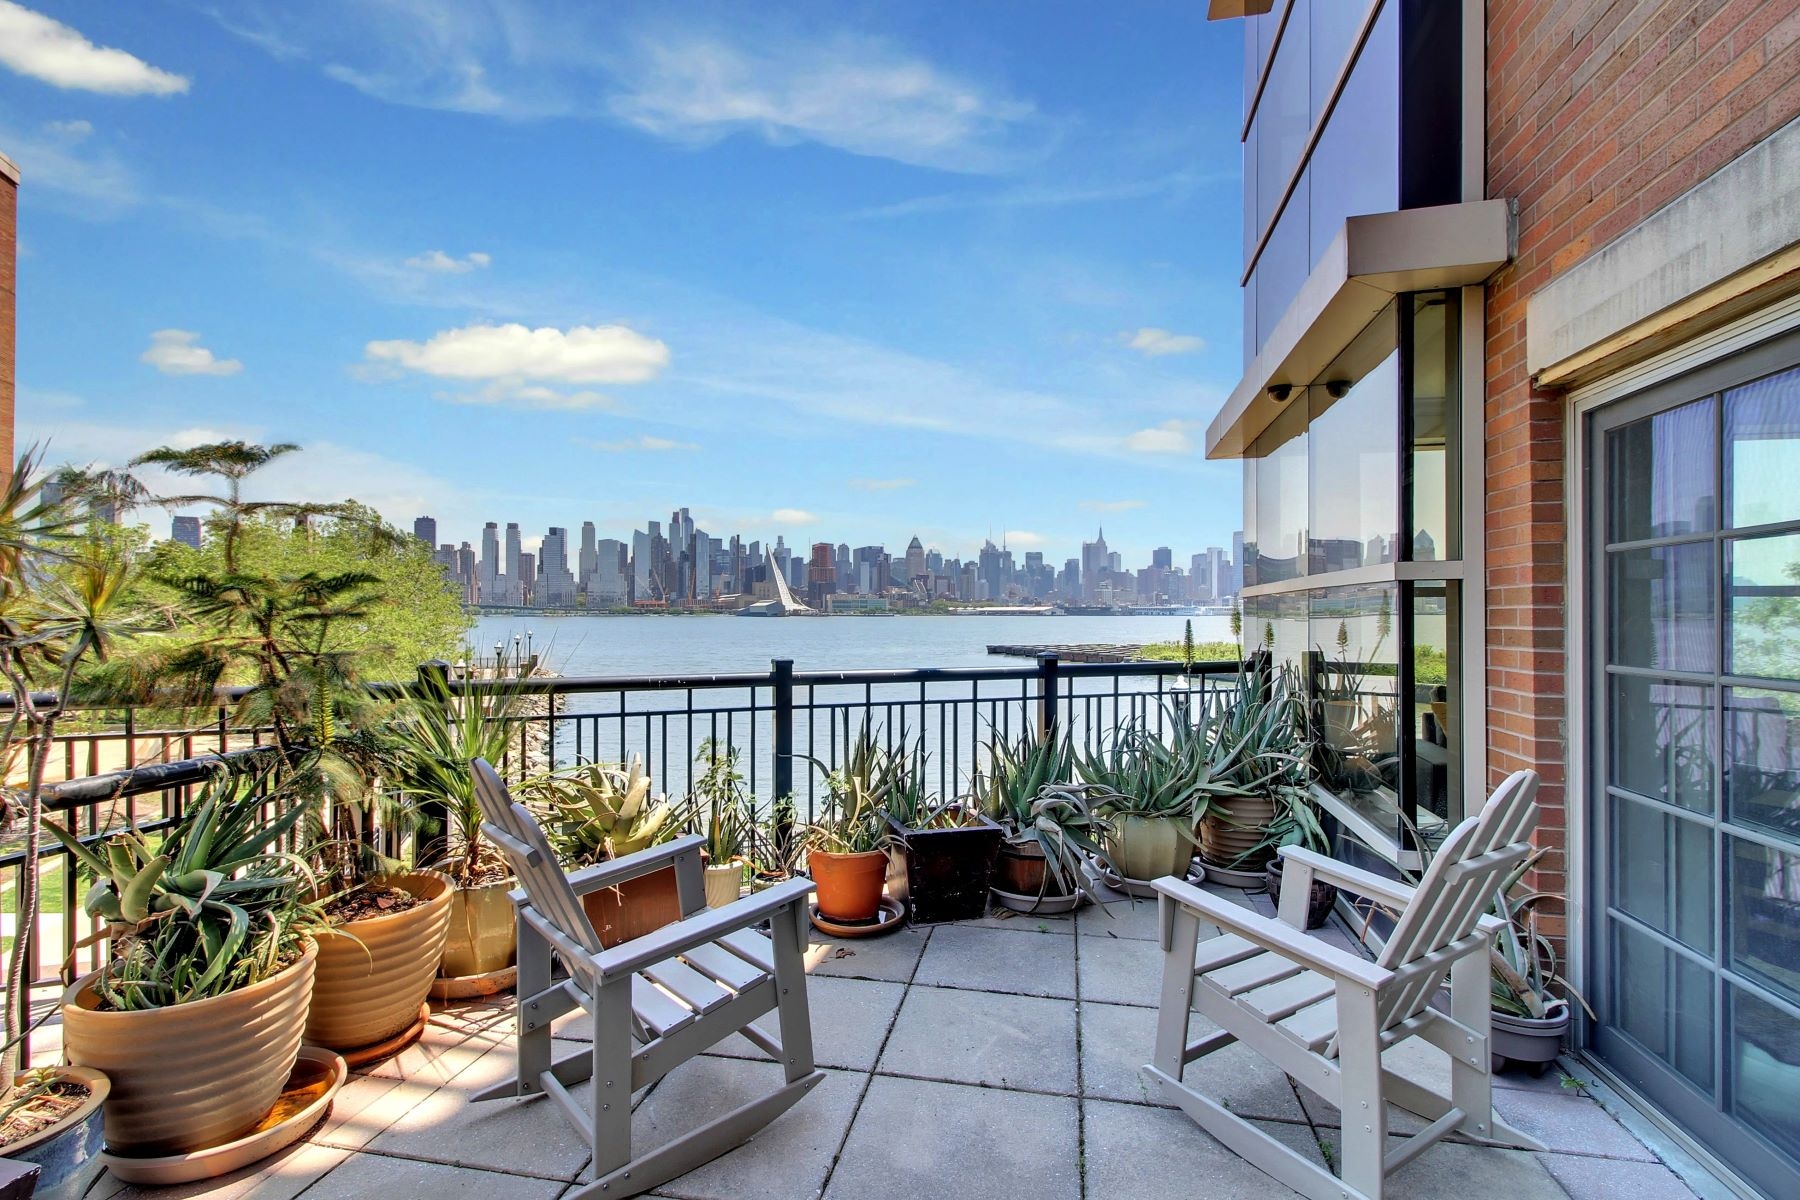 Condominium for Sale at Spectacular Manhattan Views at GRANDVIEW! 22 Ave at Port Imperial #114 West New York, New Jersey 07093 United States